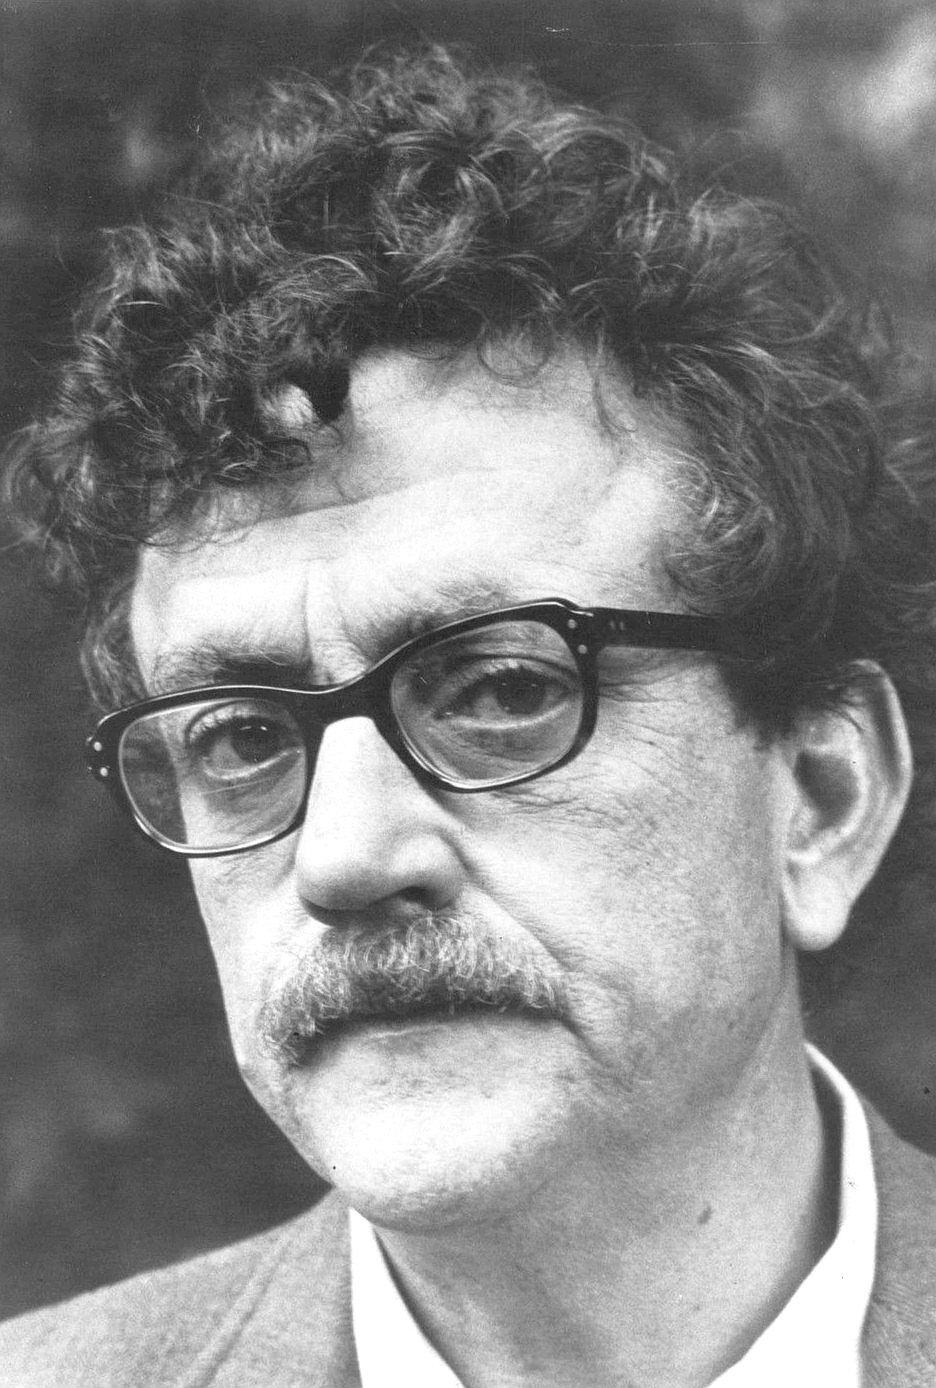 "If you haven't read any Vonnegut, you need to. Like right now. Start your ""night school"" with a collection of his short stories or one of his novels. You won't regret it."